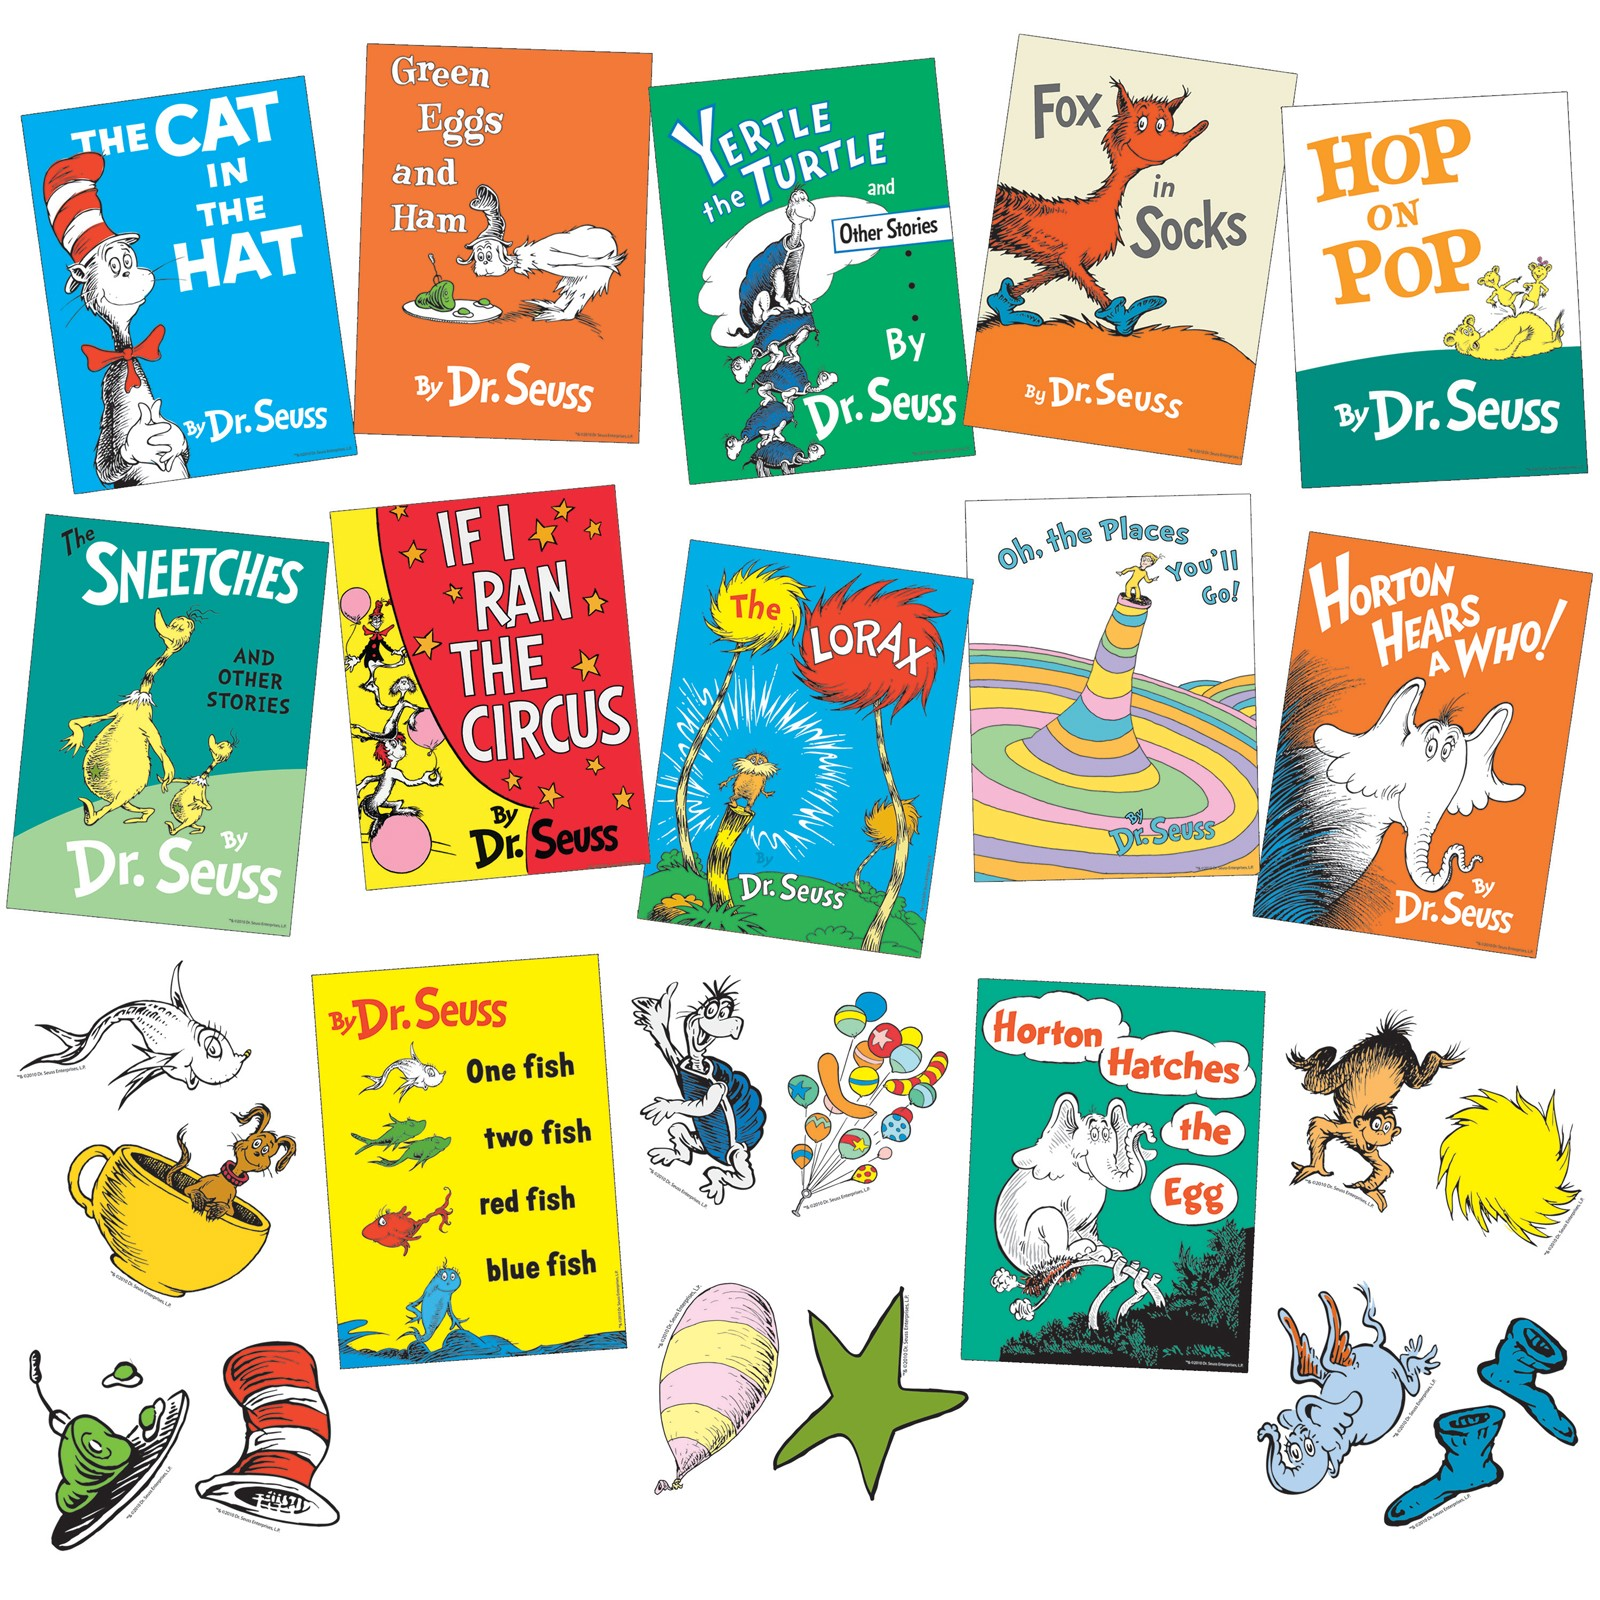 dr-seuss-books-collections